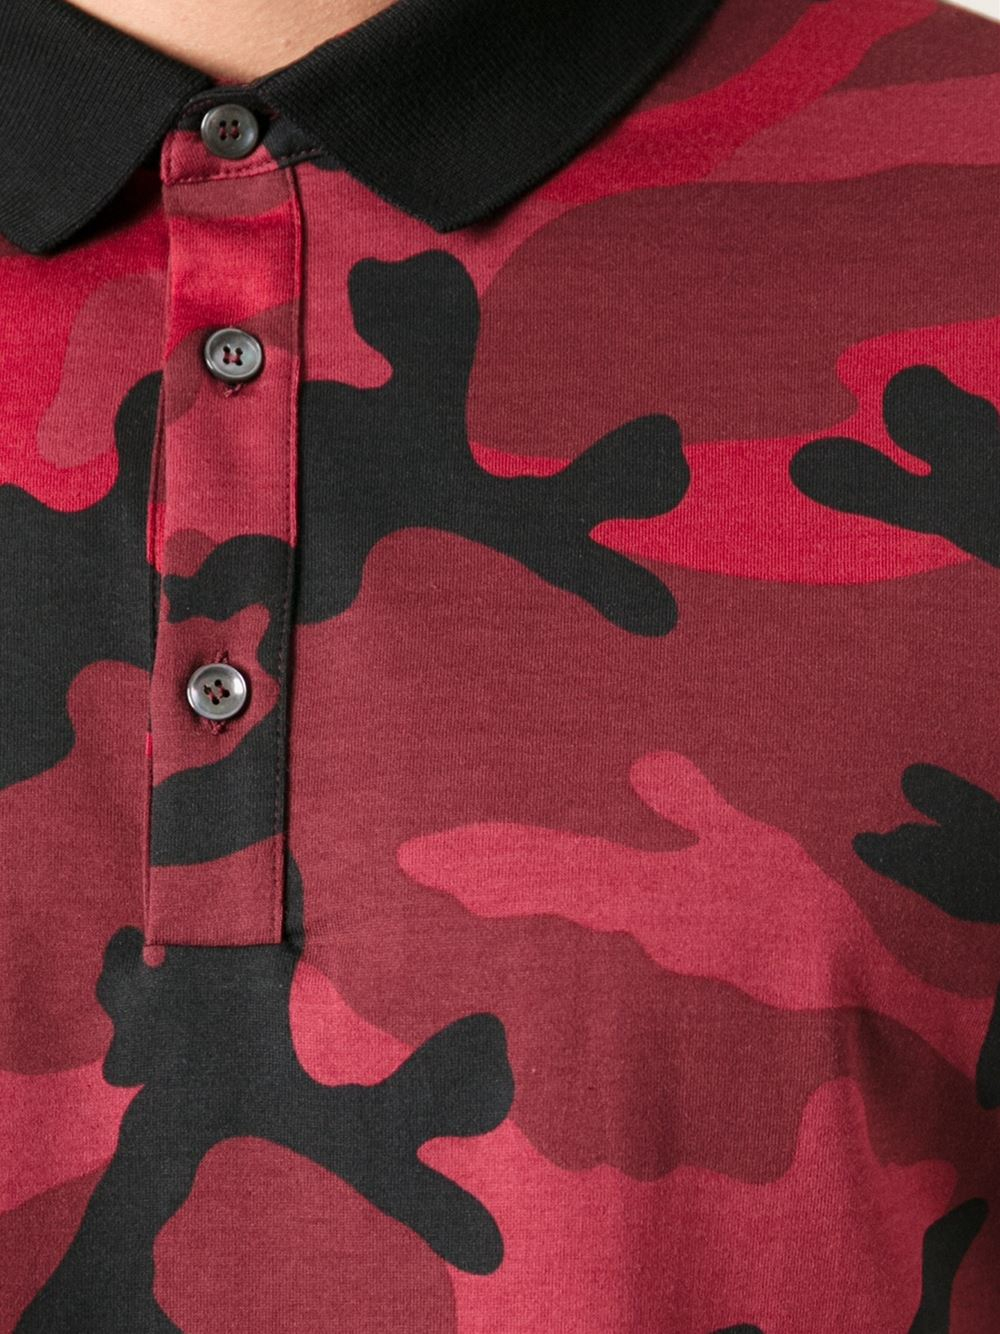 e6ada752 Valentino Camouflage Polo Shirt in Red for Men - Lyst